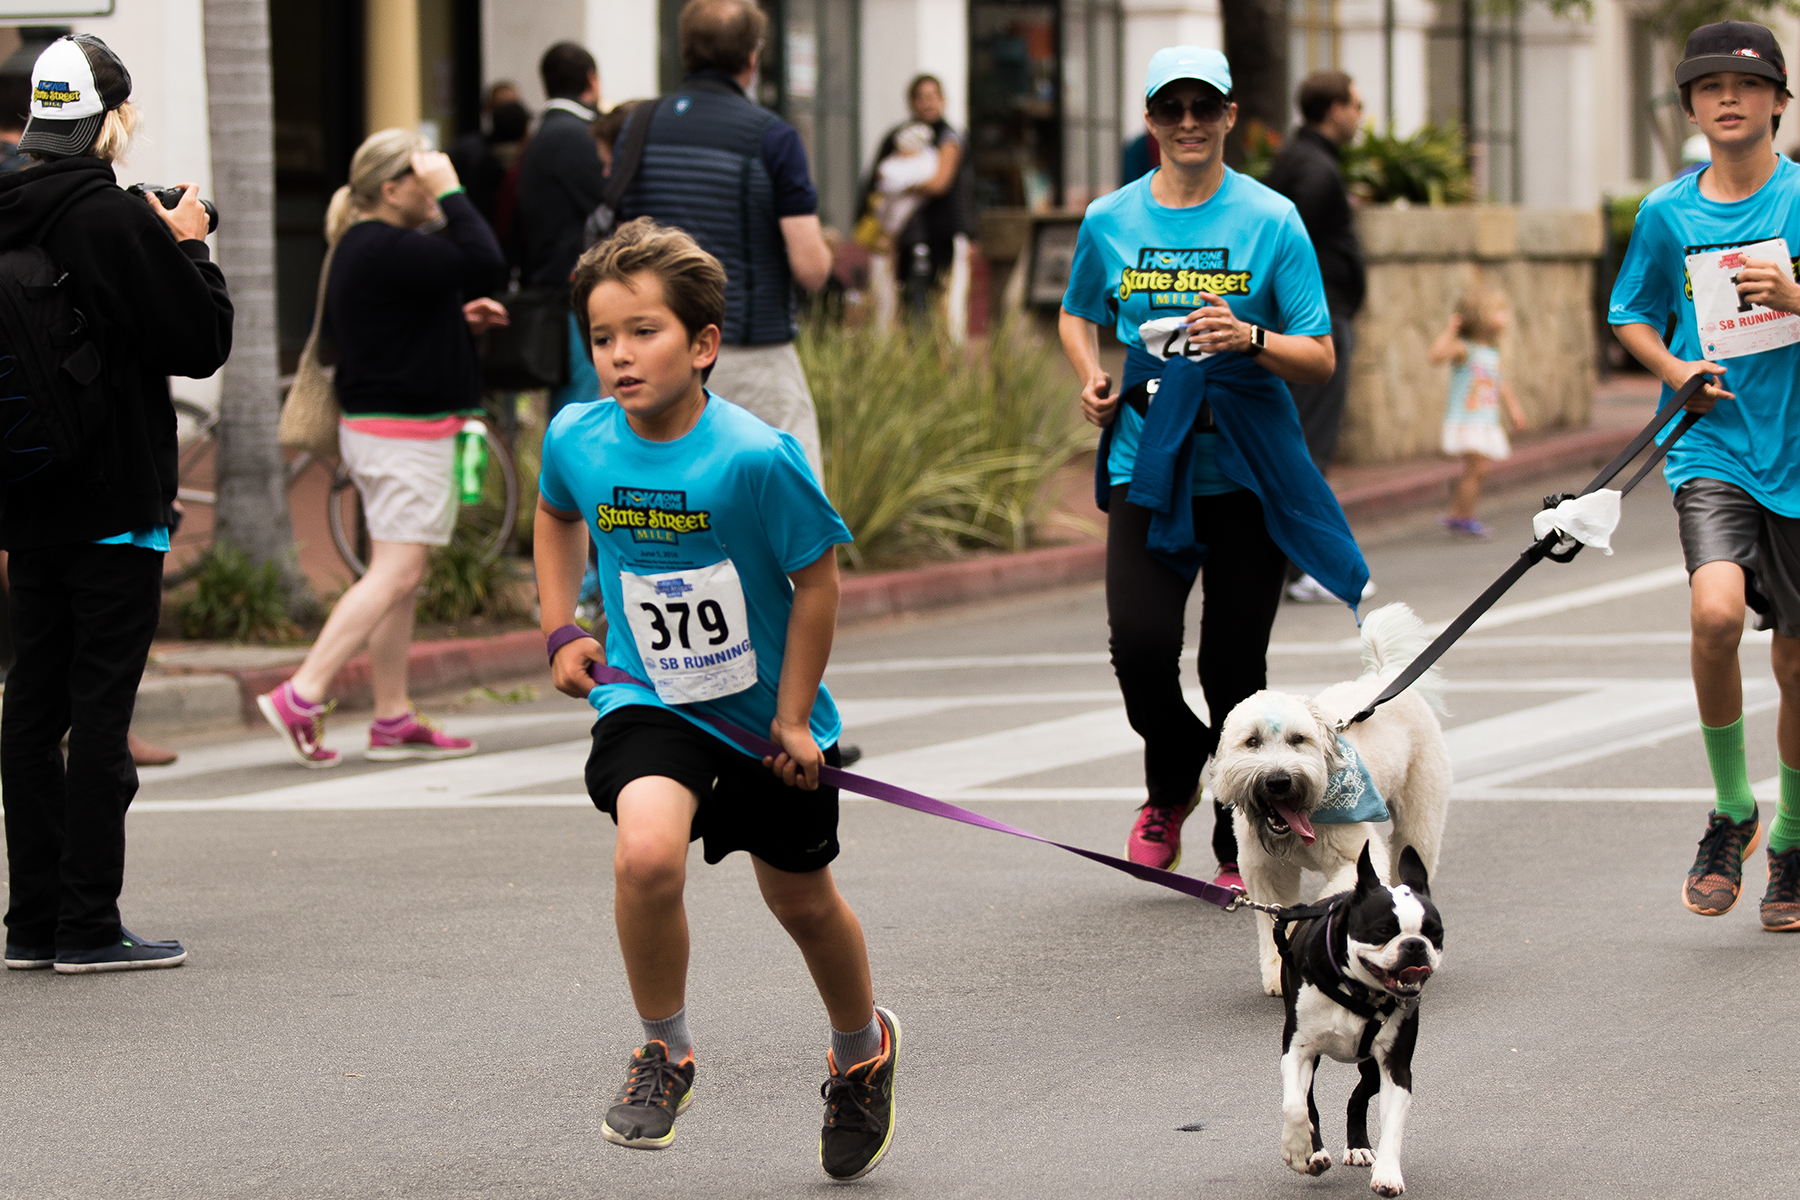 Jack Drown, 9, of Santa Barbara runs with his dog during the State Street Mile on Saturday morning.